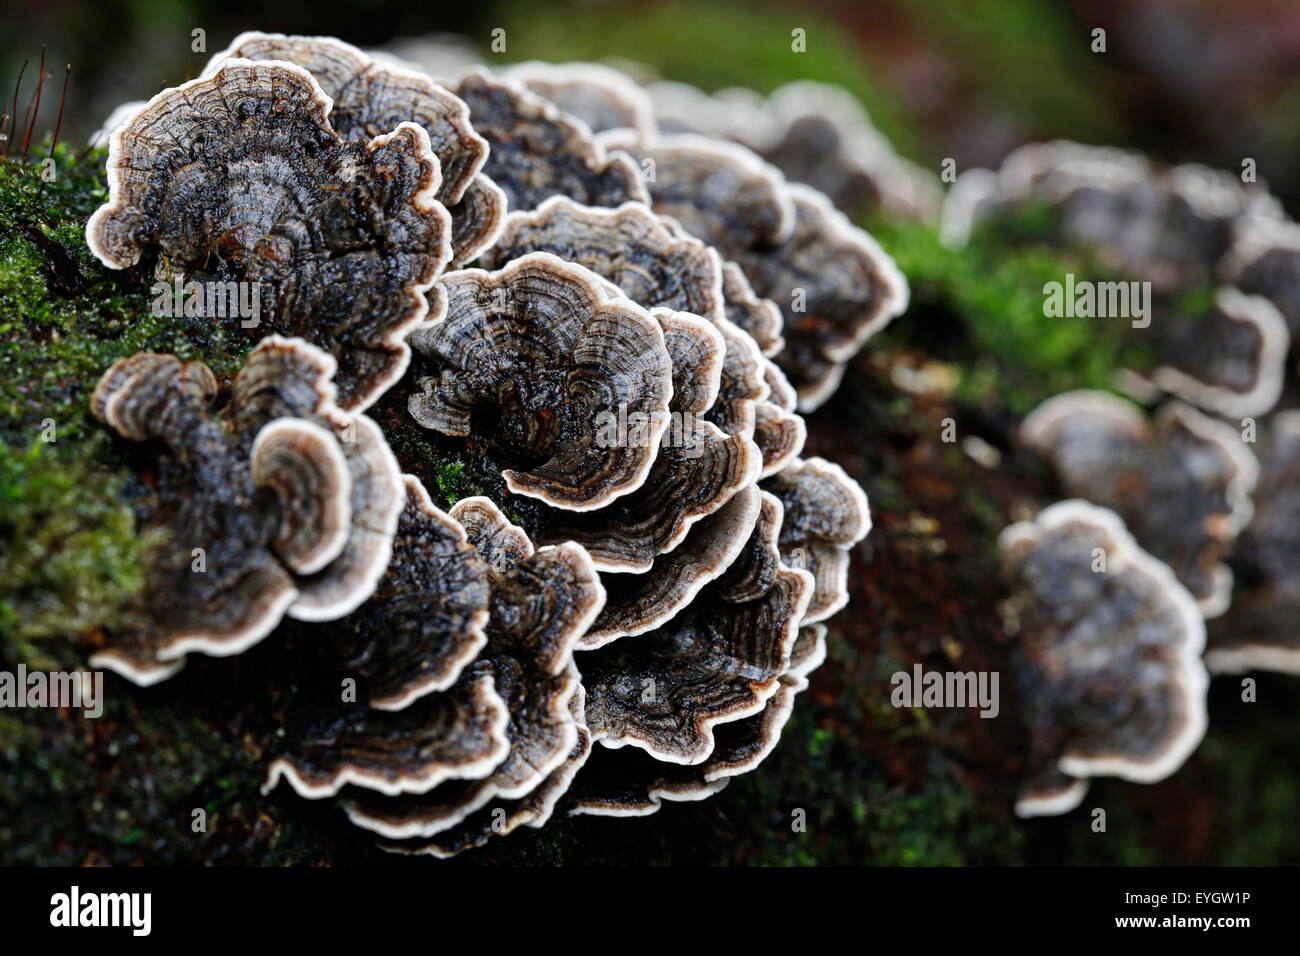 Brown and white Turkey tail fungus or mushrooms, Trametes versicolor, growing on a wet branch in a damp English - Stock Image